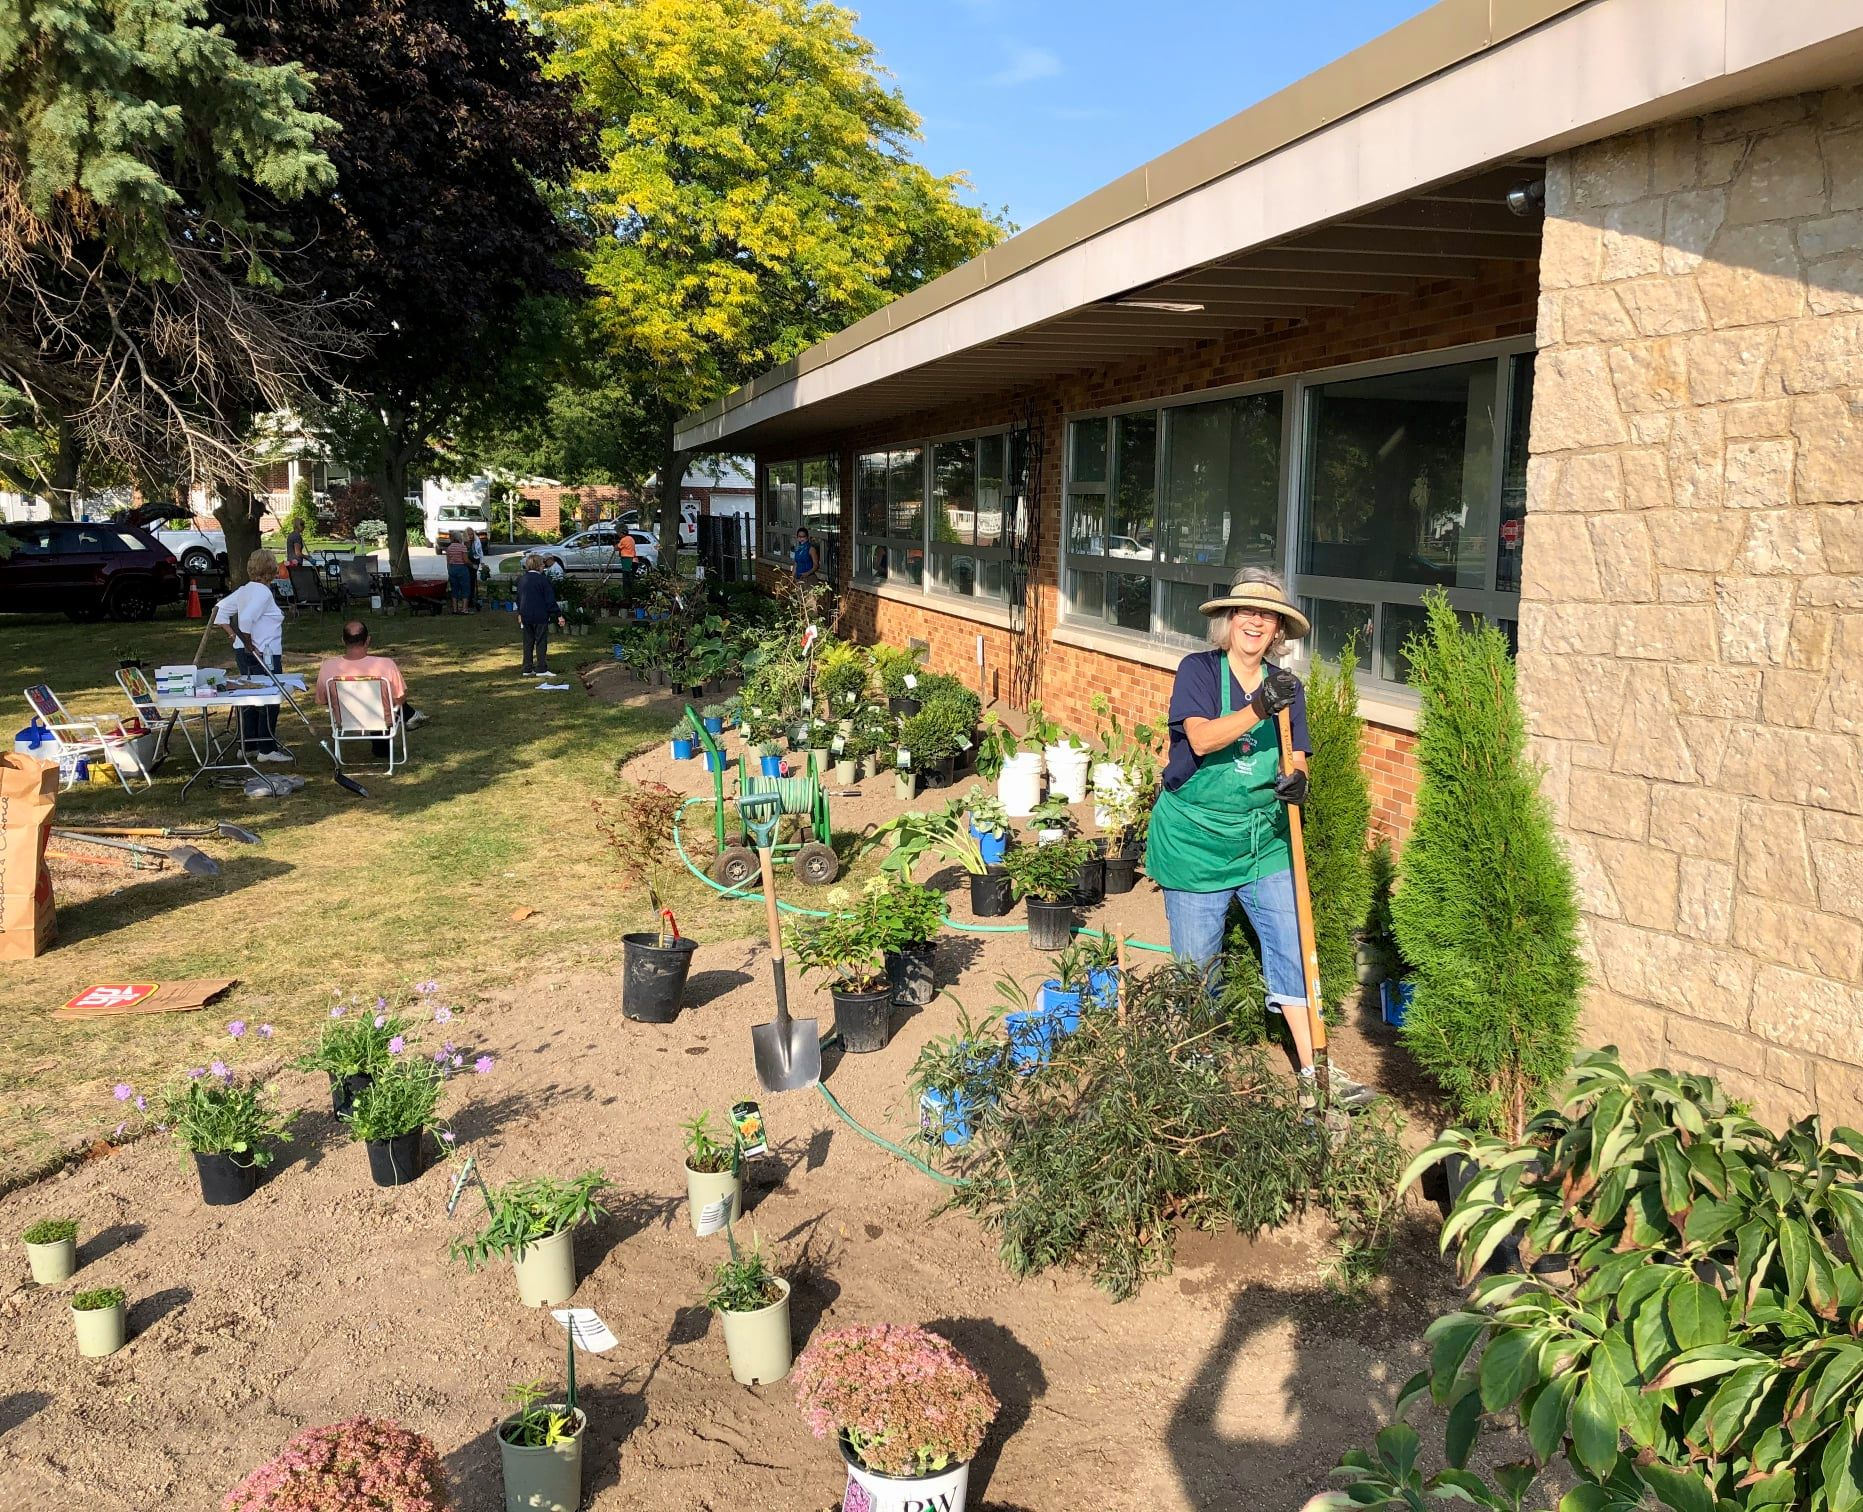 Members of Amherstburg's Fort Malden Horticultural Society outside the community hub.